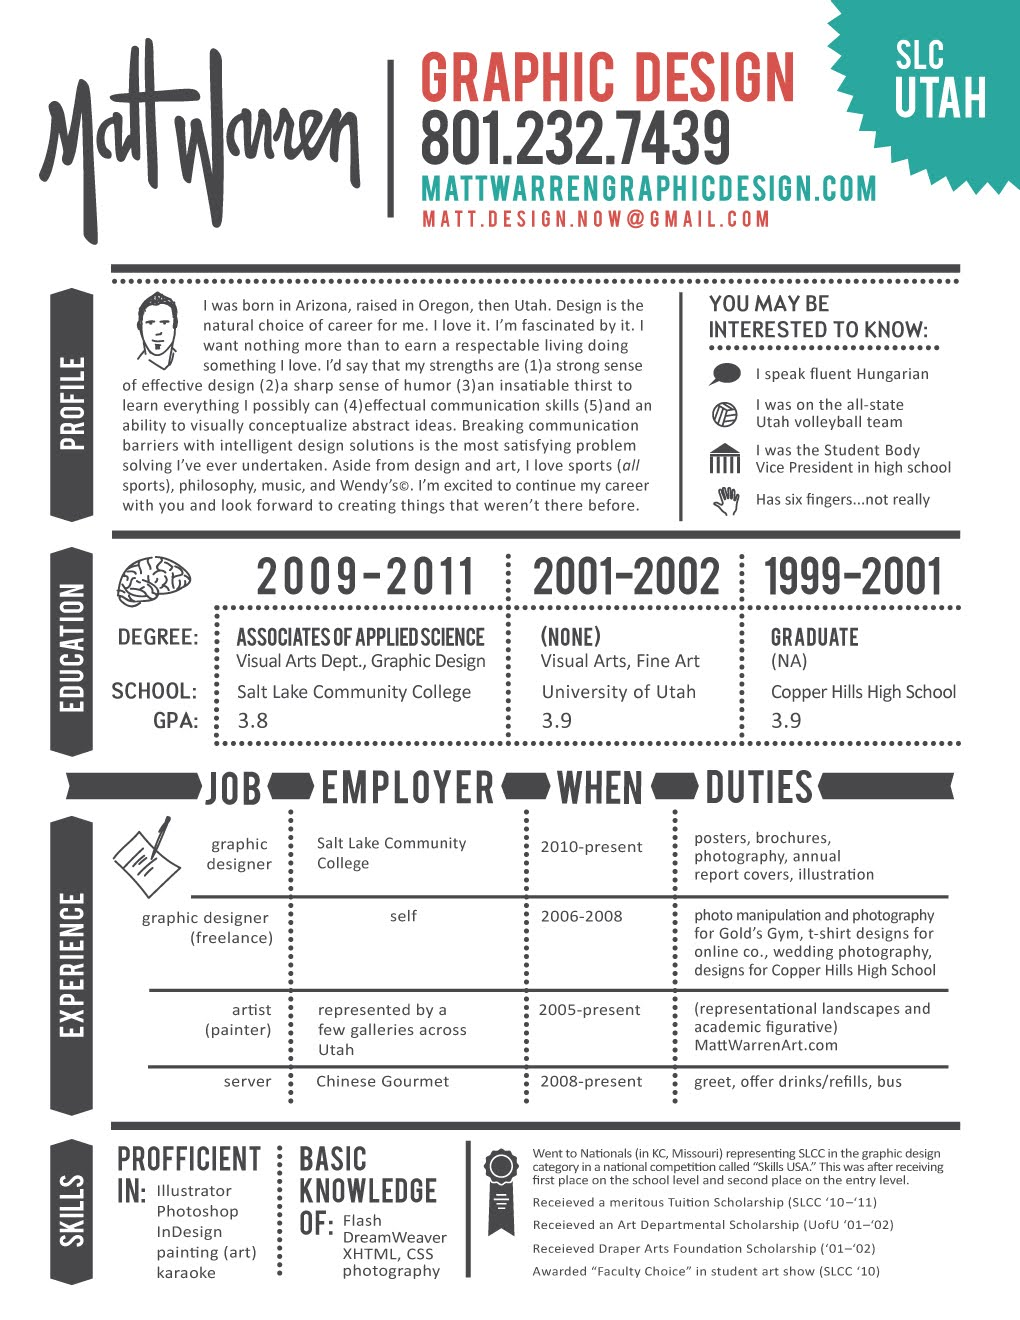 Opposenewapstandardsus  Pleasant  Images About Hire Me On Pinterest  Graphic Designer Resume  With Glamorous  Images About Hire Me On Pinterest  Graphic Designer Resume Resume Design And Resume With Astounding Field Service Resume Also Resume Goals Examples In Addition Resume Templates For Word  And Ceo Resume Samples As Well As Med Surg Nursing Resume Additionally Cashier Experience Resume From Pinterestcom With Opposenewapstandardsus  Glamorous  Images About Hire Me On Pinterest  Graphic Designer Resume  With Astounding  Images About Hire Me On Pinterest  Graphic Designer Resume Resume Design And Resume And Pleasant Field Service Resume Also Resume Goals Examples In Addition Resume Templates For Word  From Pinterestcom